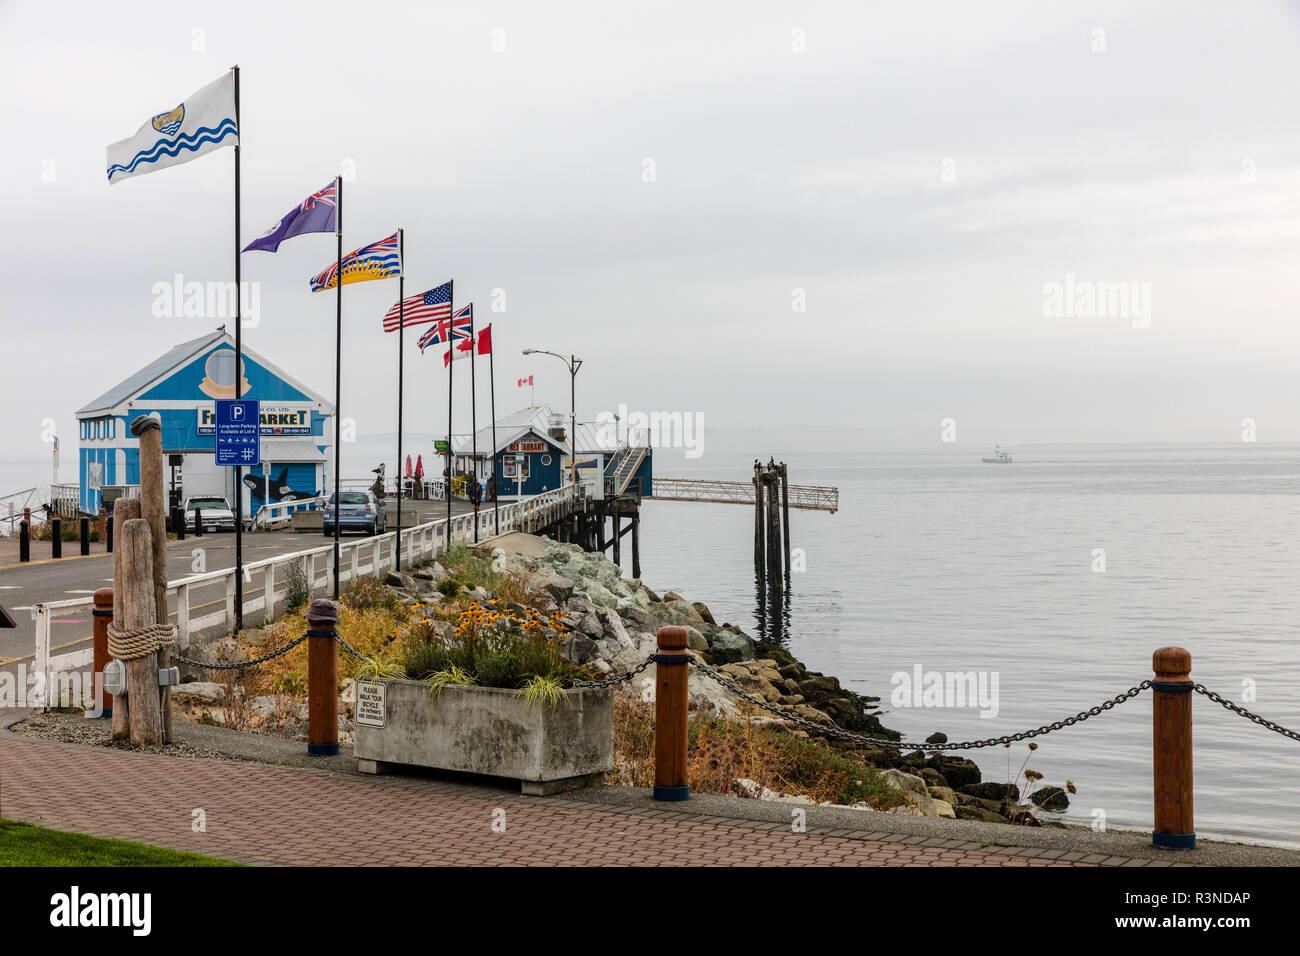 Seafood restaurant at the end of the pier in Sidney, British Columbia, Canada Stock Photo